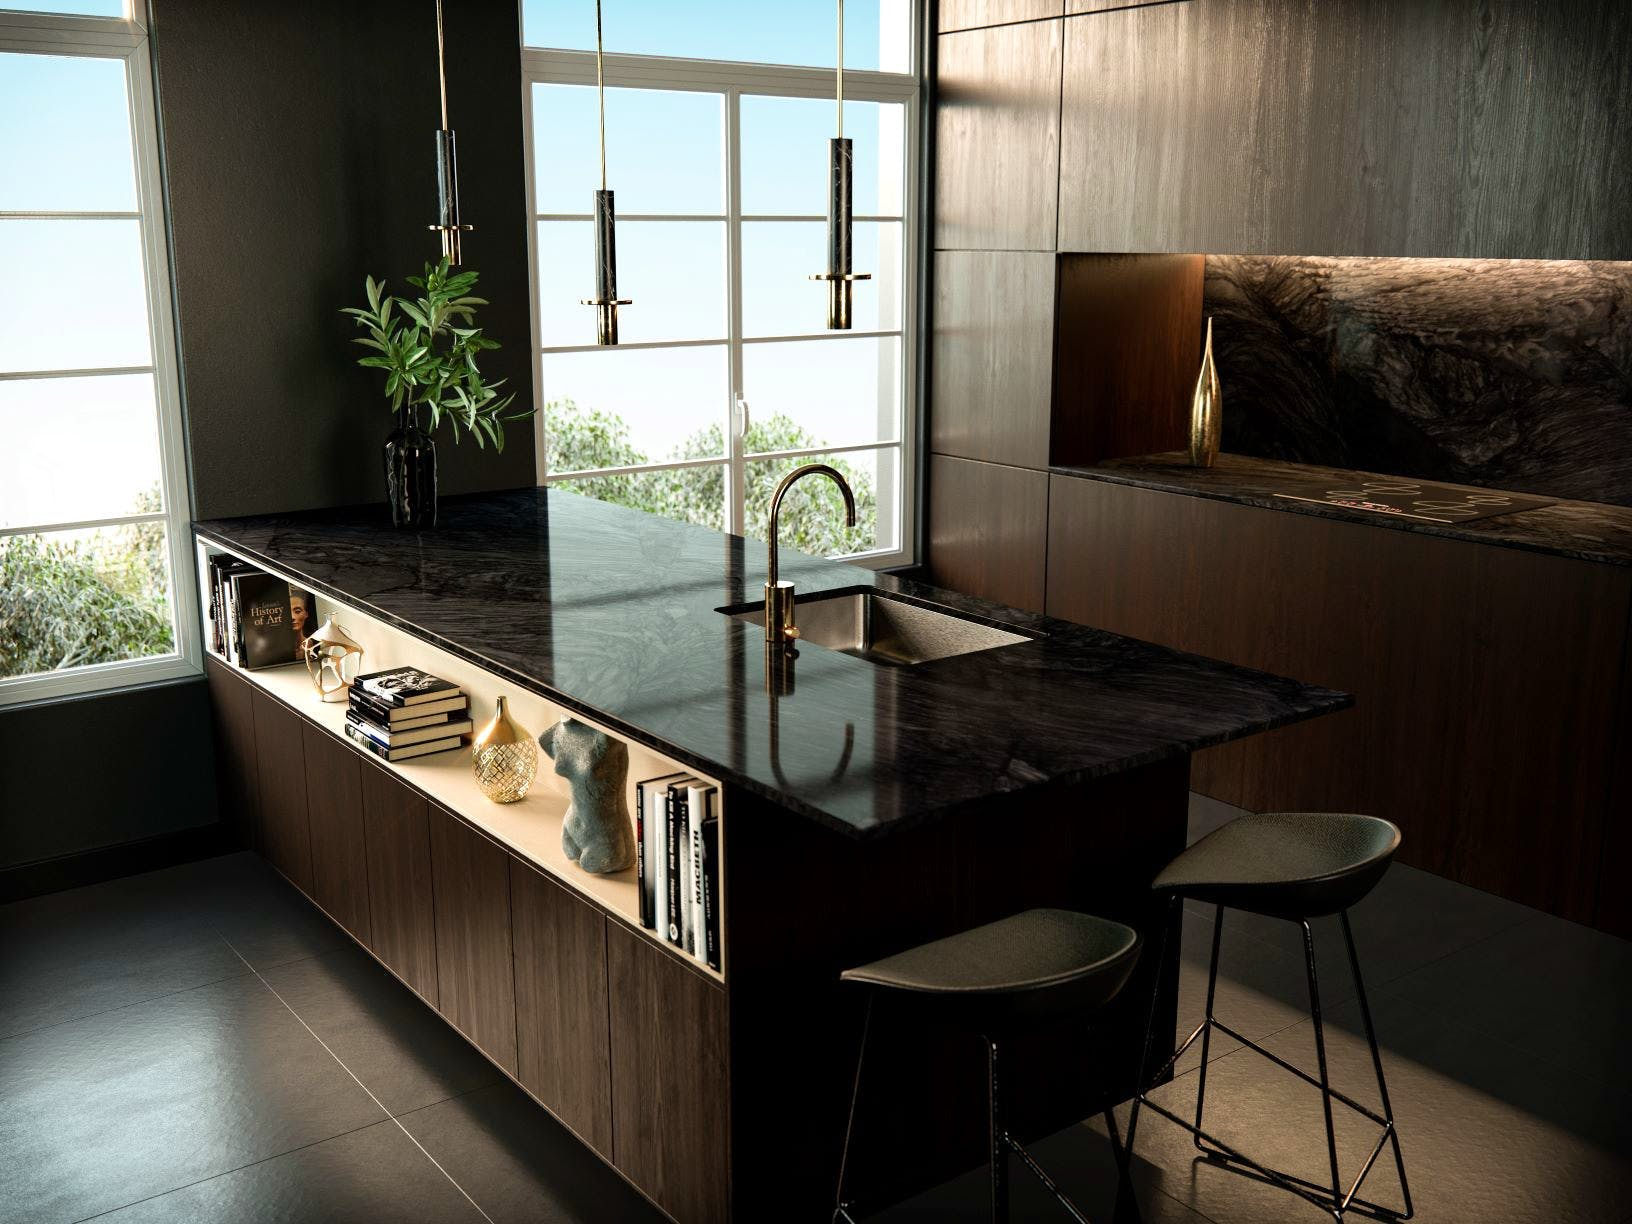 Sensa by Cosentino Nilo Kitchen countertops and backsplash 1 2 | Cosentino